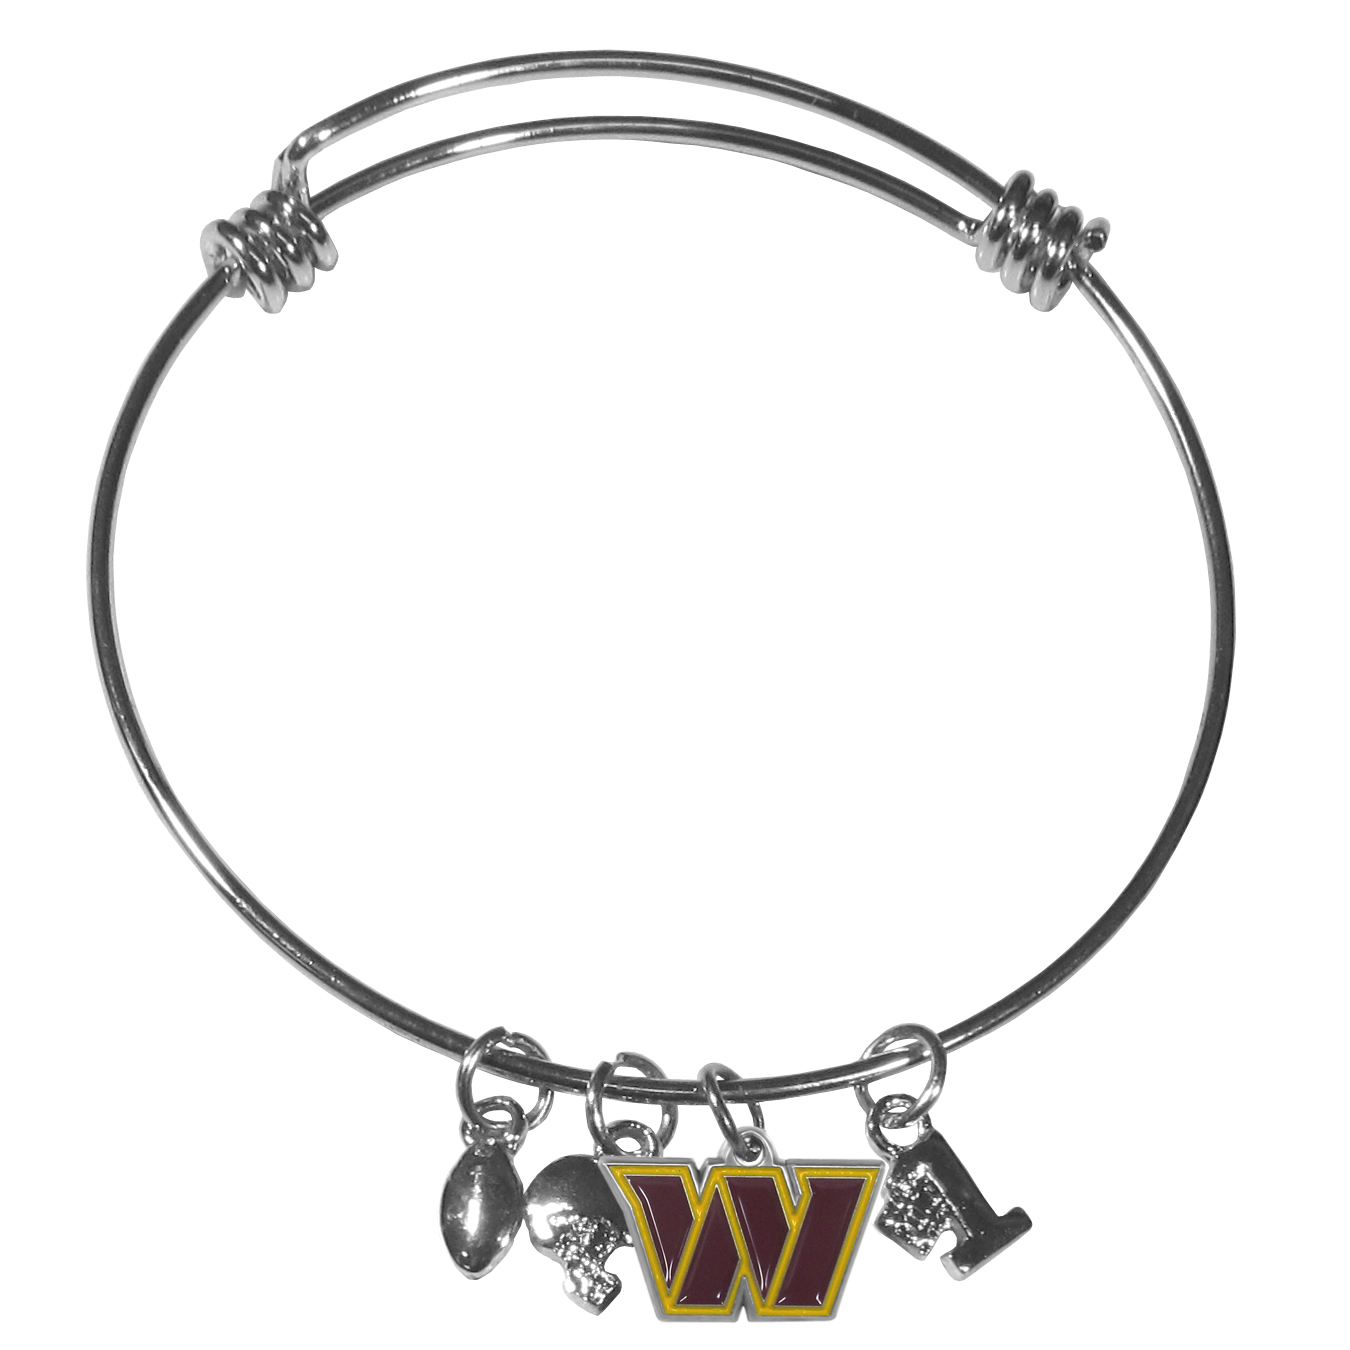 Washington Redskins Charm Bangle Bracelet - Adjustable wire bracelets are all the rage and this Washington Redskins bracelet matches the popular trend with your beloved team. The bracelet features 4 charms in total, each feature exceptional detail and the team charm has enameled team colors.